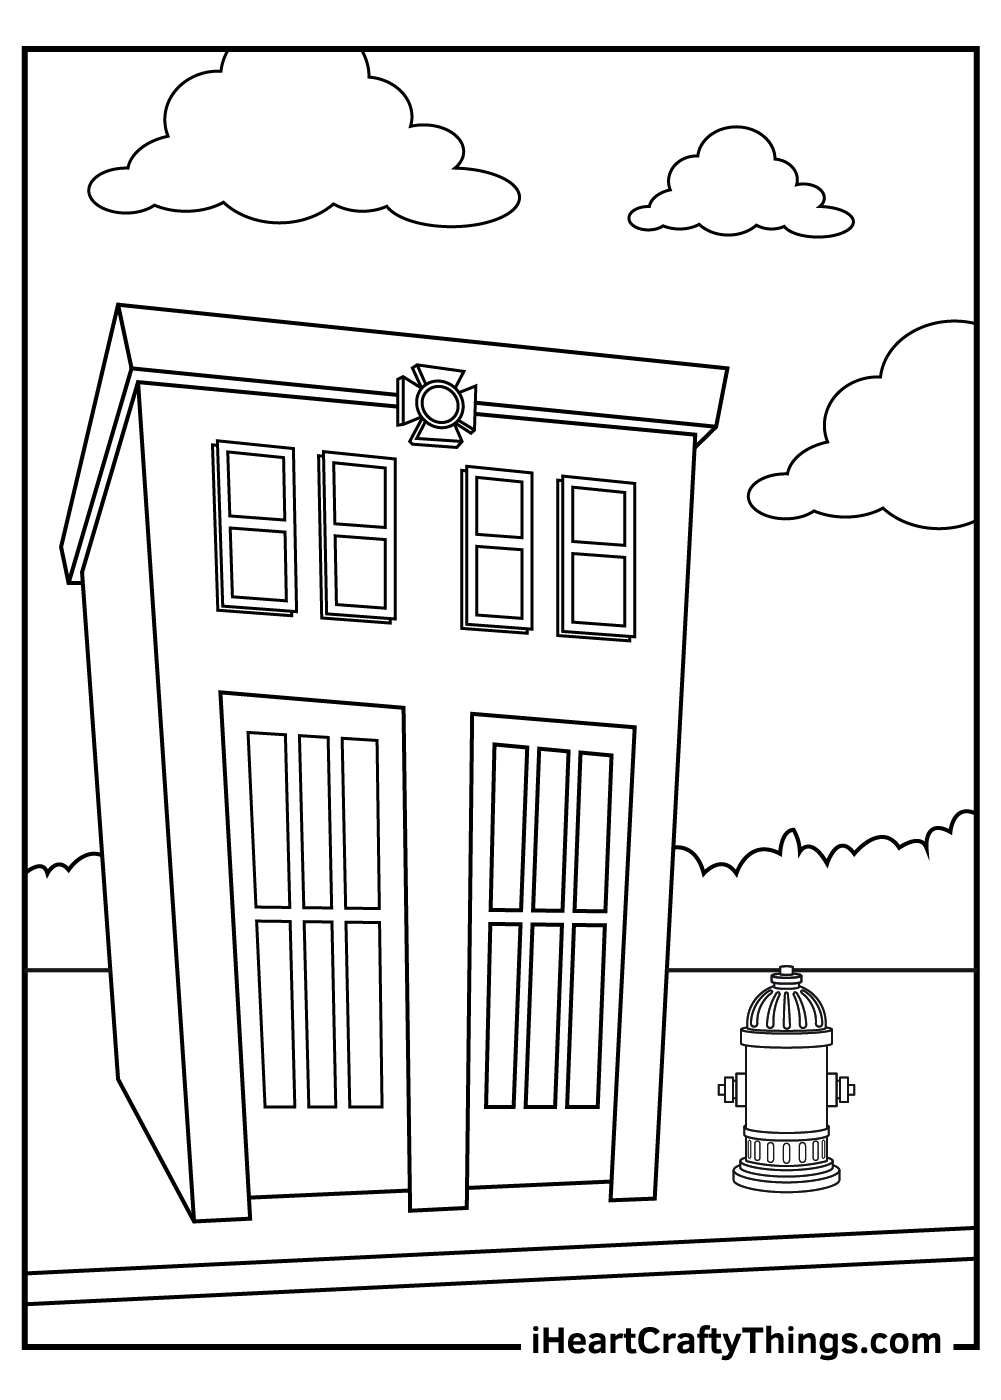 fire hydrant coloring pages free printabes